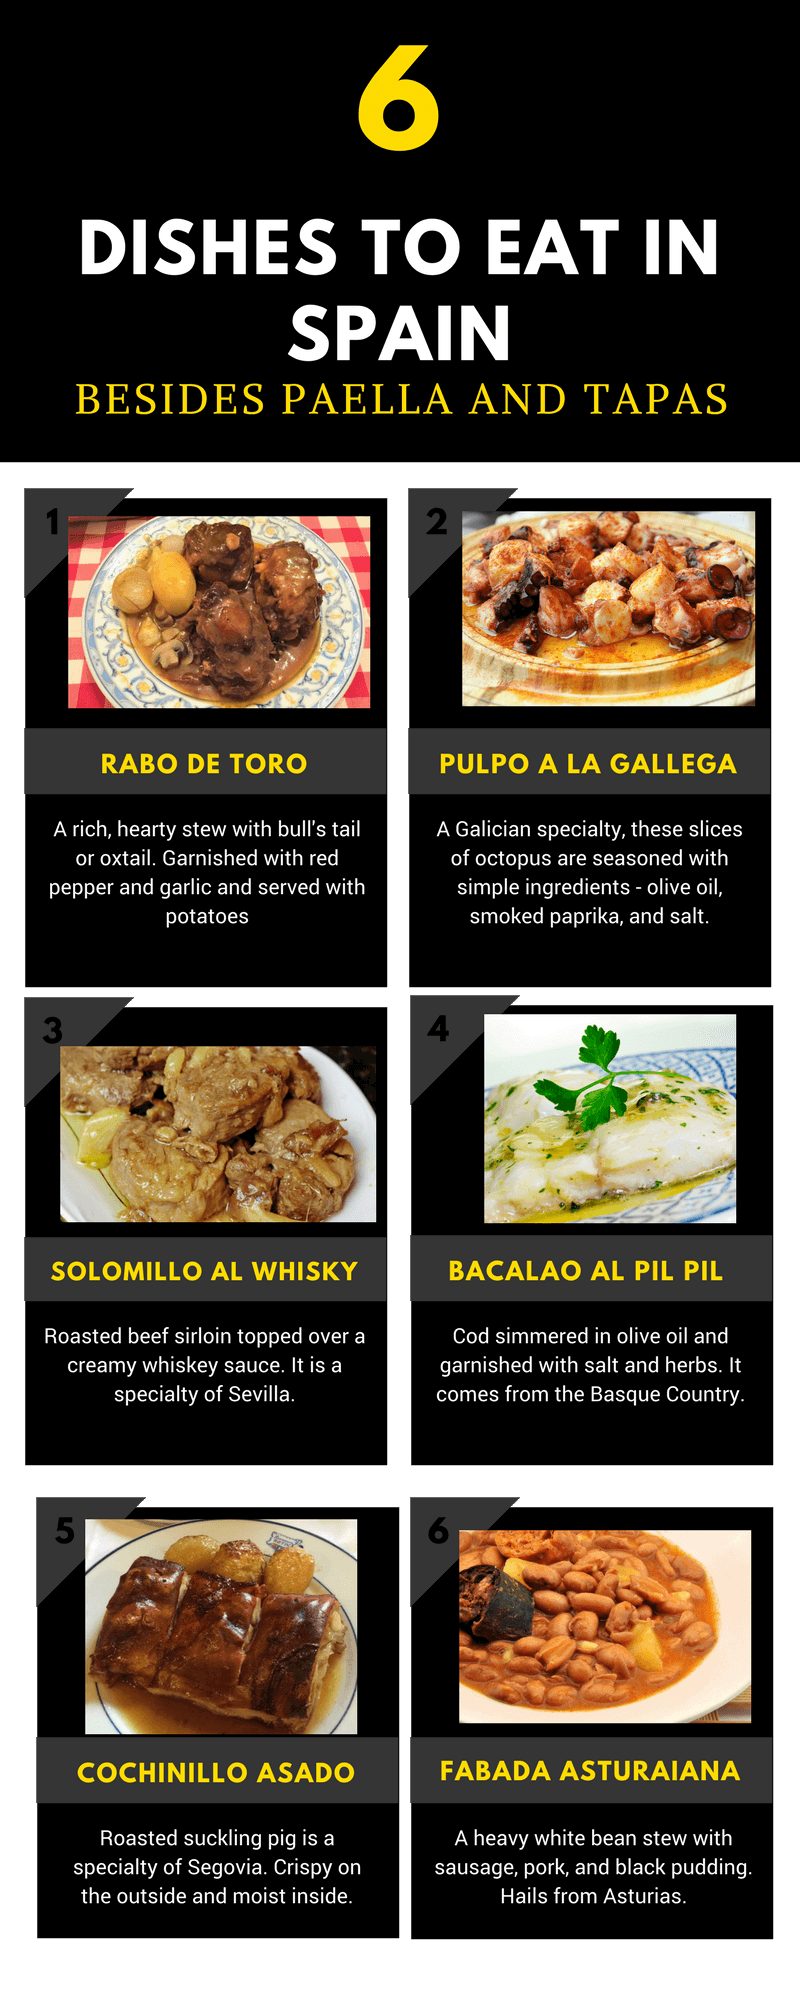 6 Dishes to Eat in Spain Besides Paella and Tapas Infographic